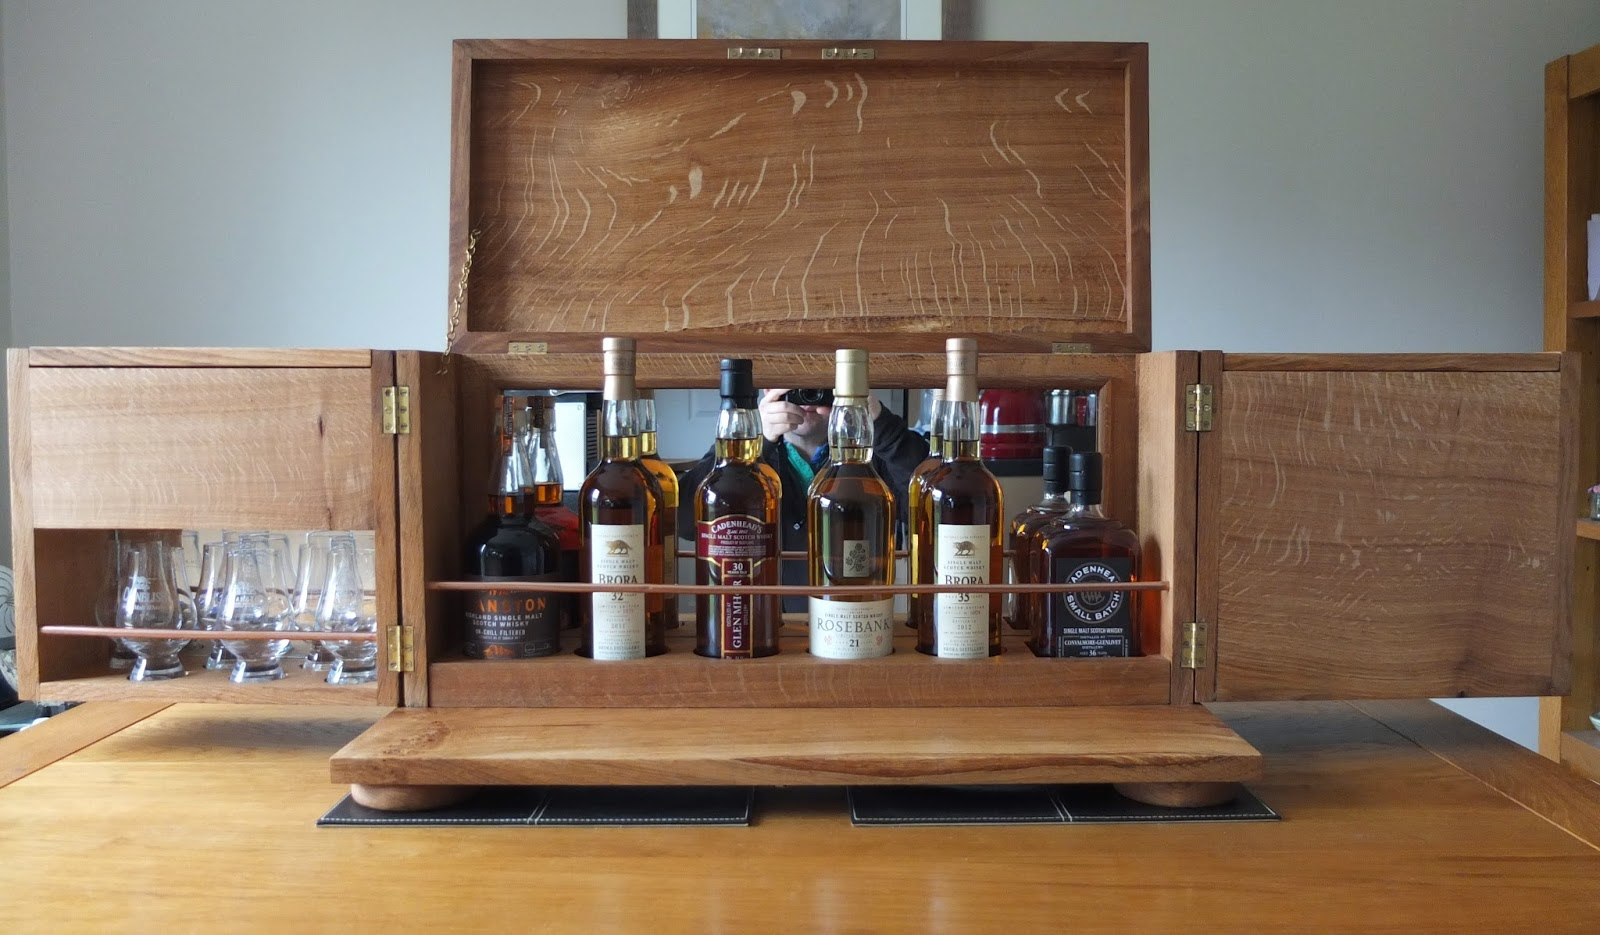 The Whisky Display Cabinet